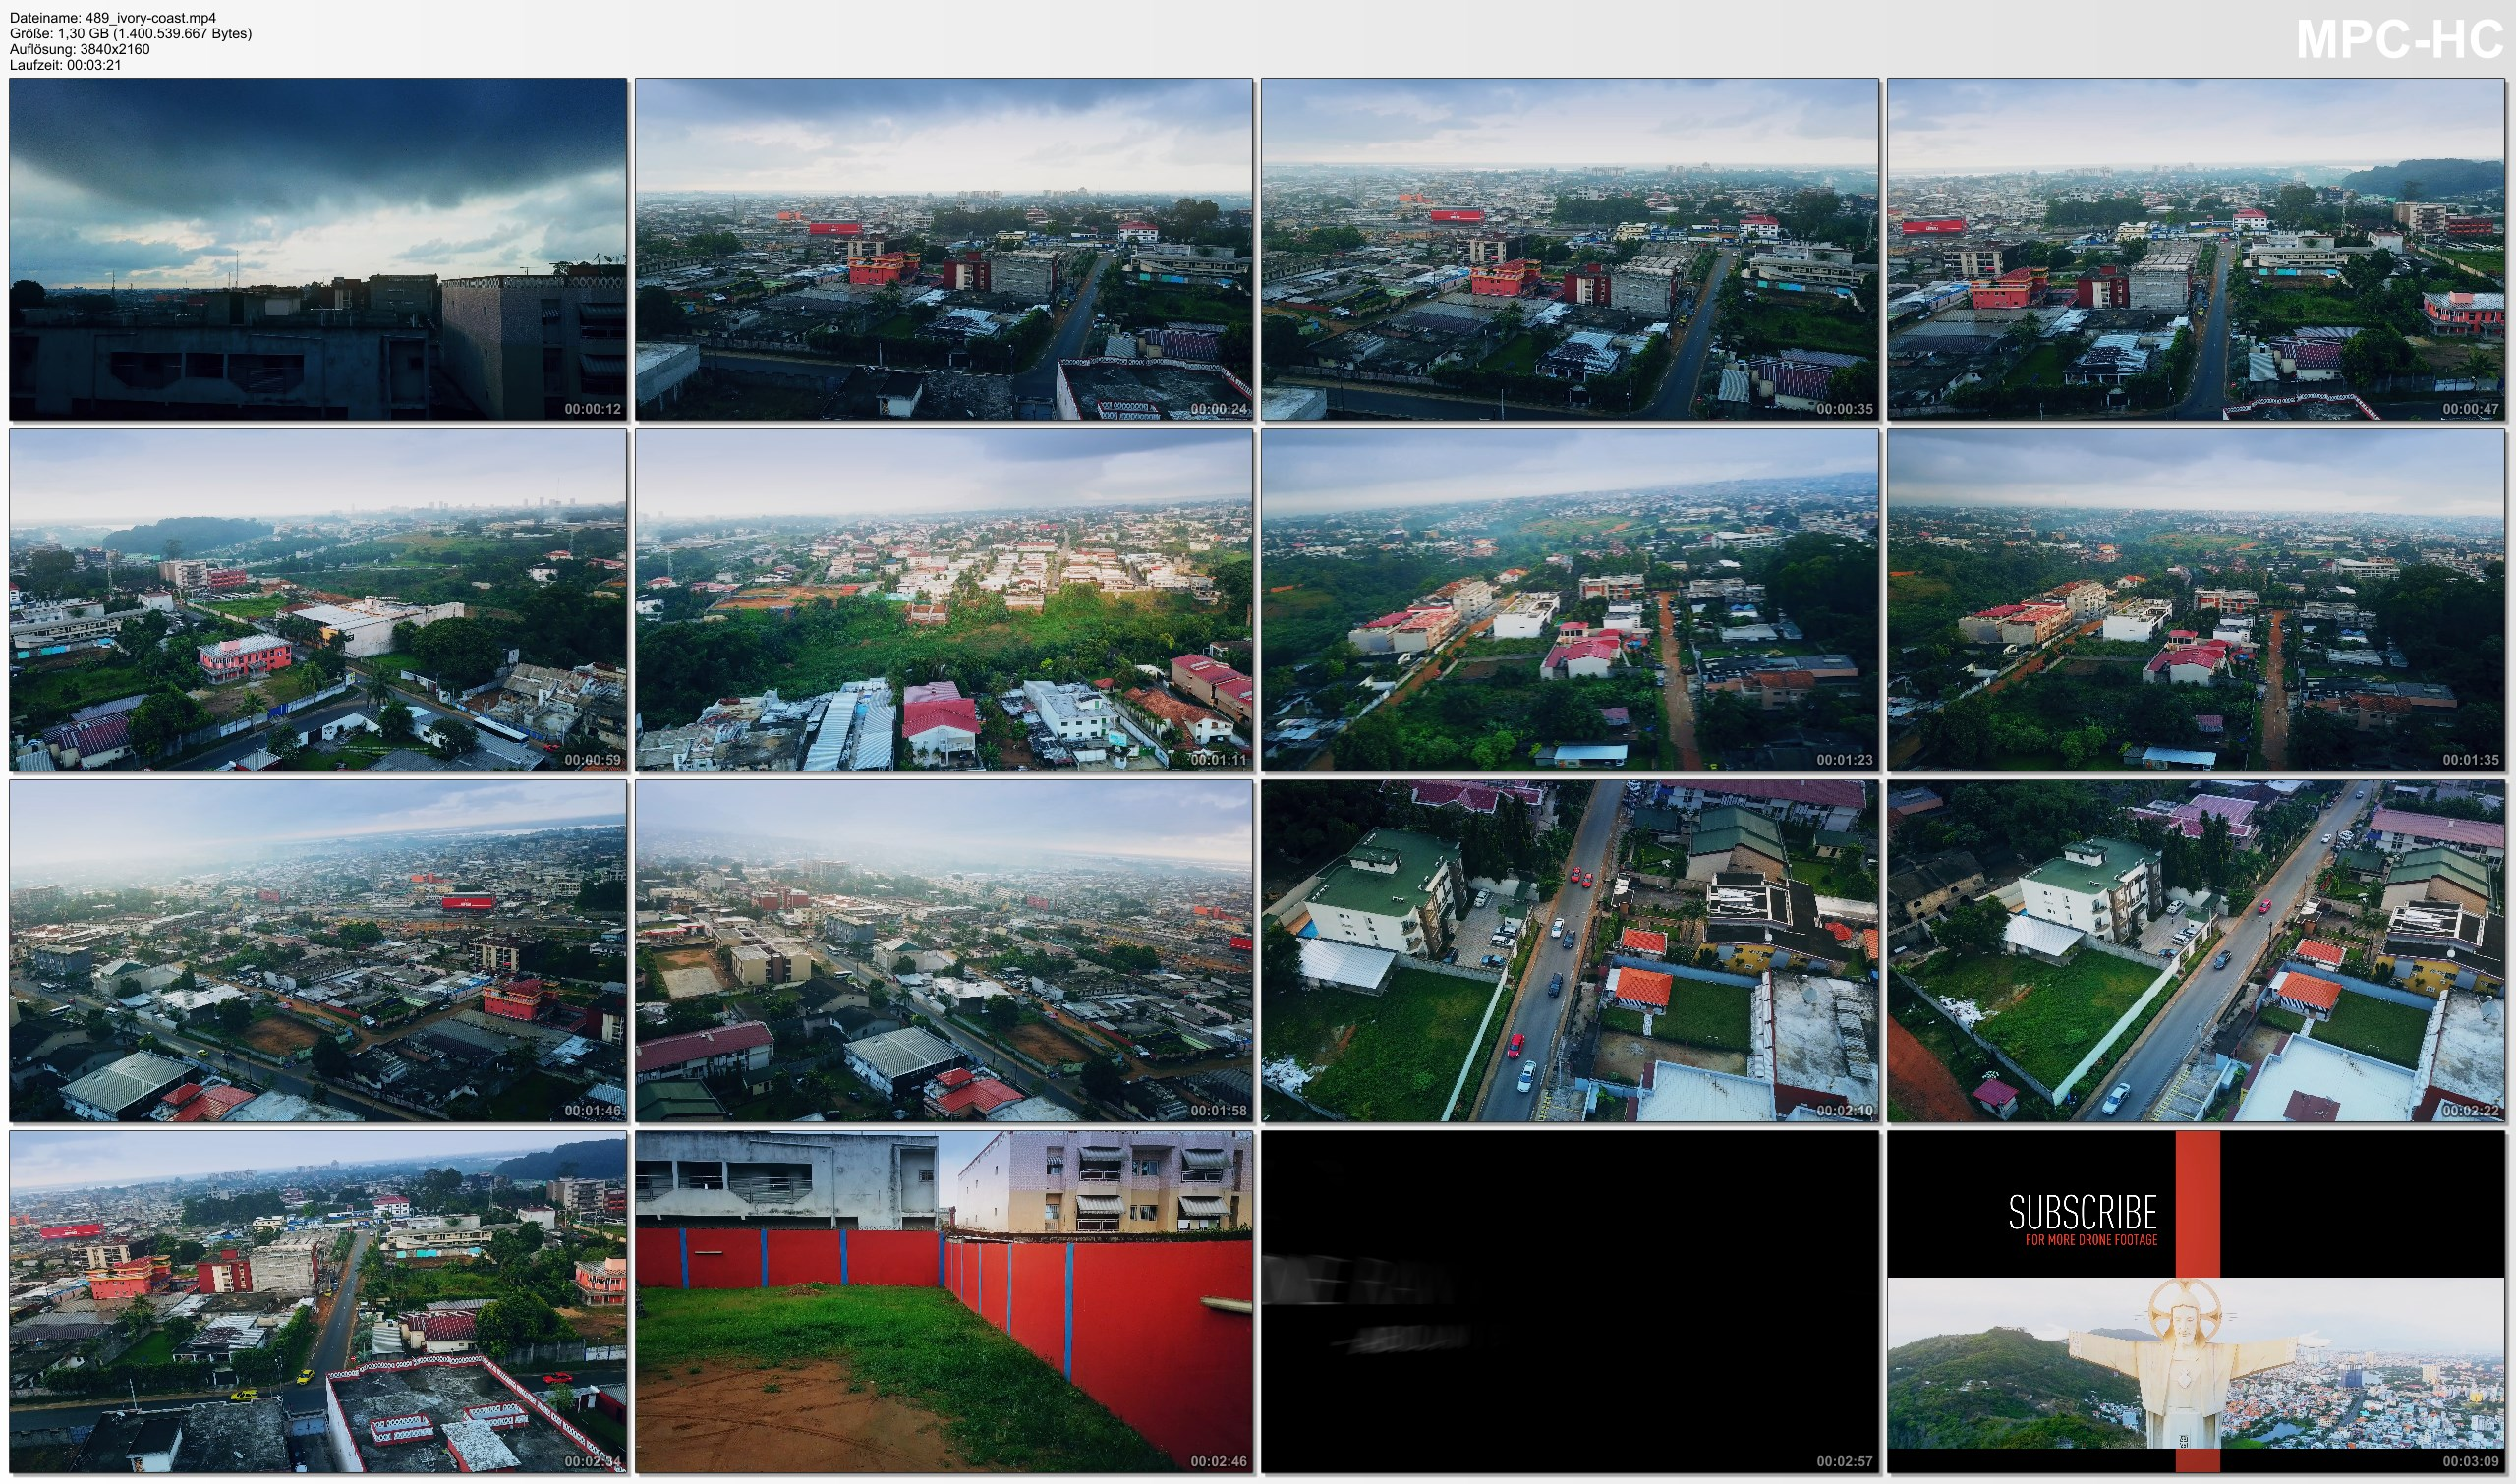 Drone Pictures from Video 【4K】Drone RAW Footage | This is IVORY COAST 2020 | Capital City Abidjan | UltraHD Stock Video